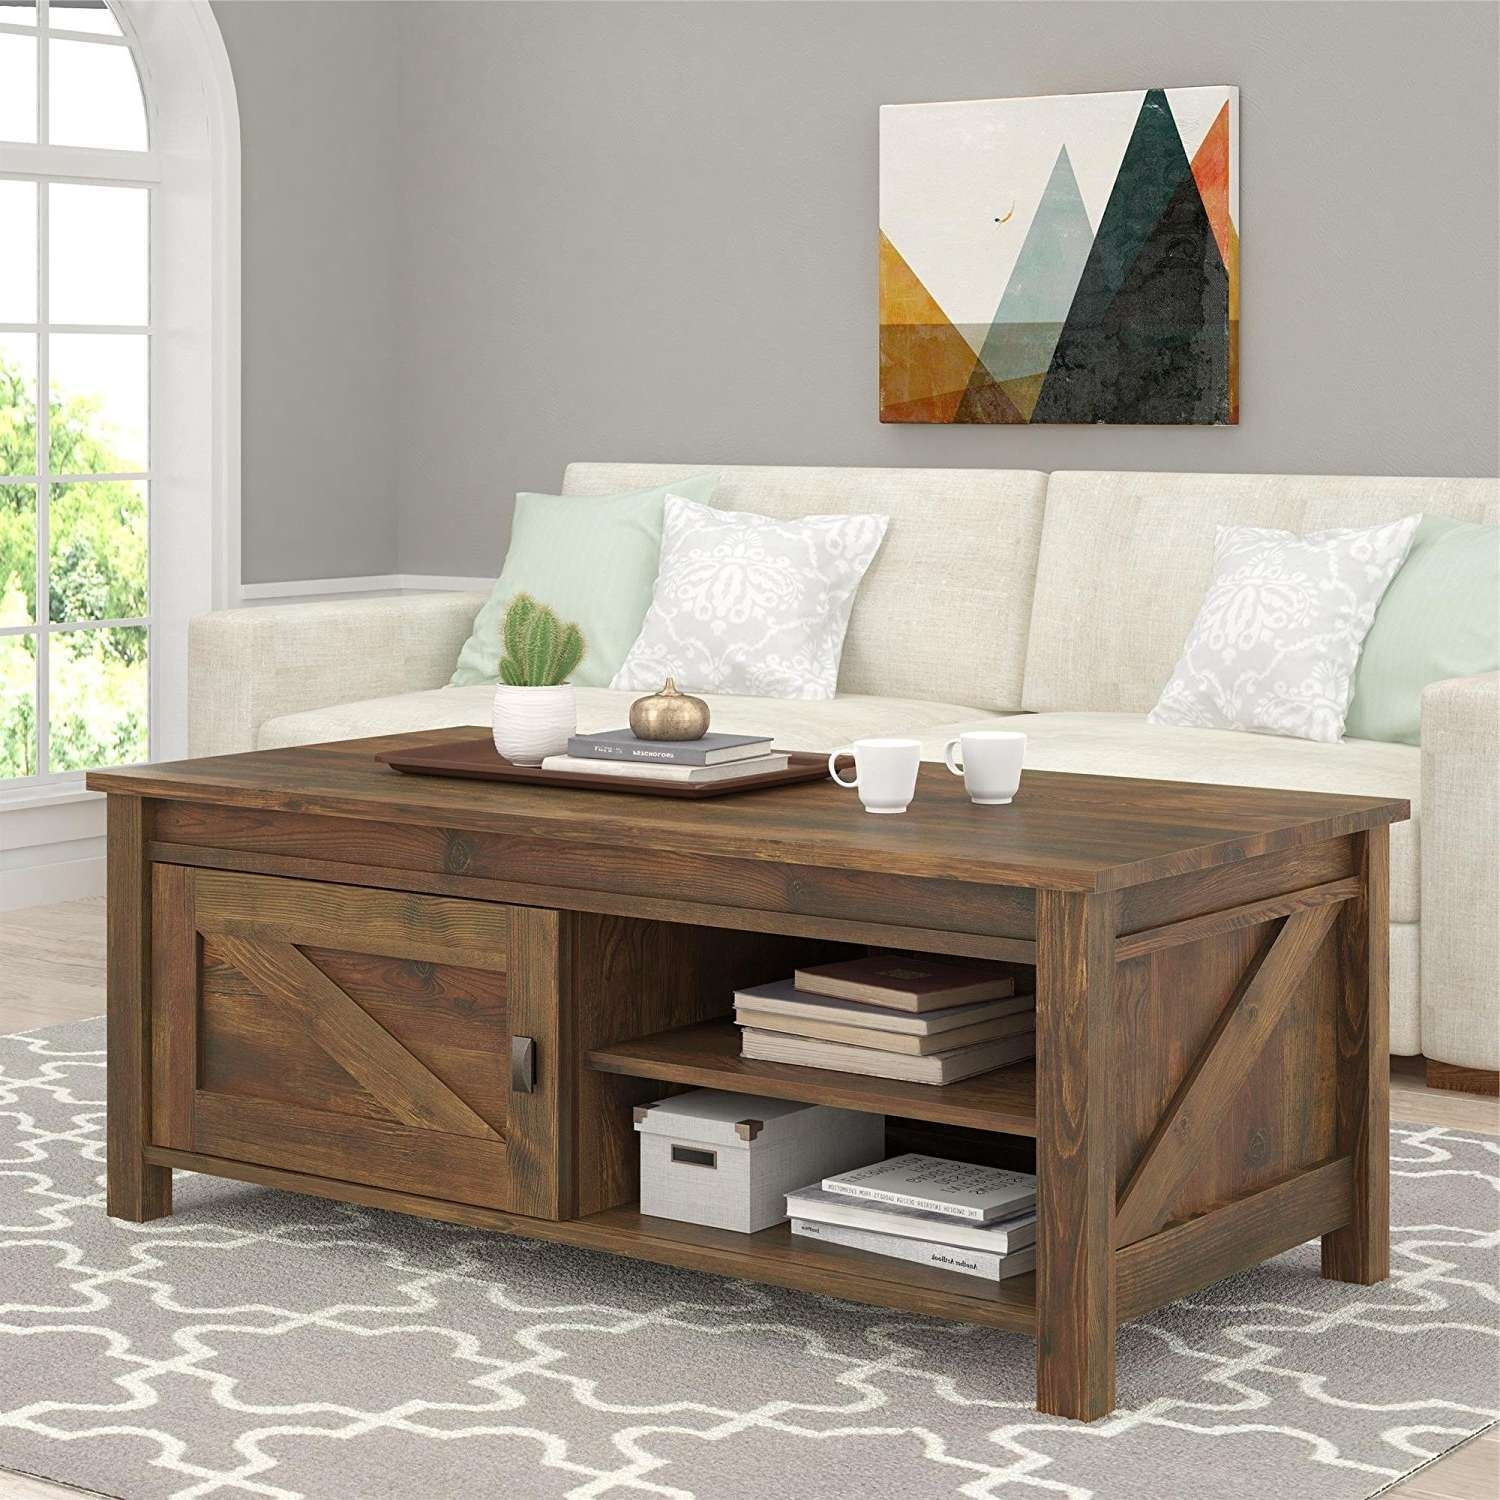 Coffee Tables And Tv Stands Matching – Contemporary Modern For Coffee Tables And Tv Stands Matching (View 9 of 15)